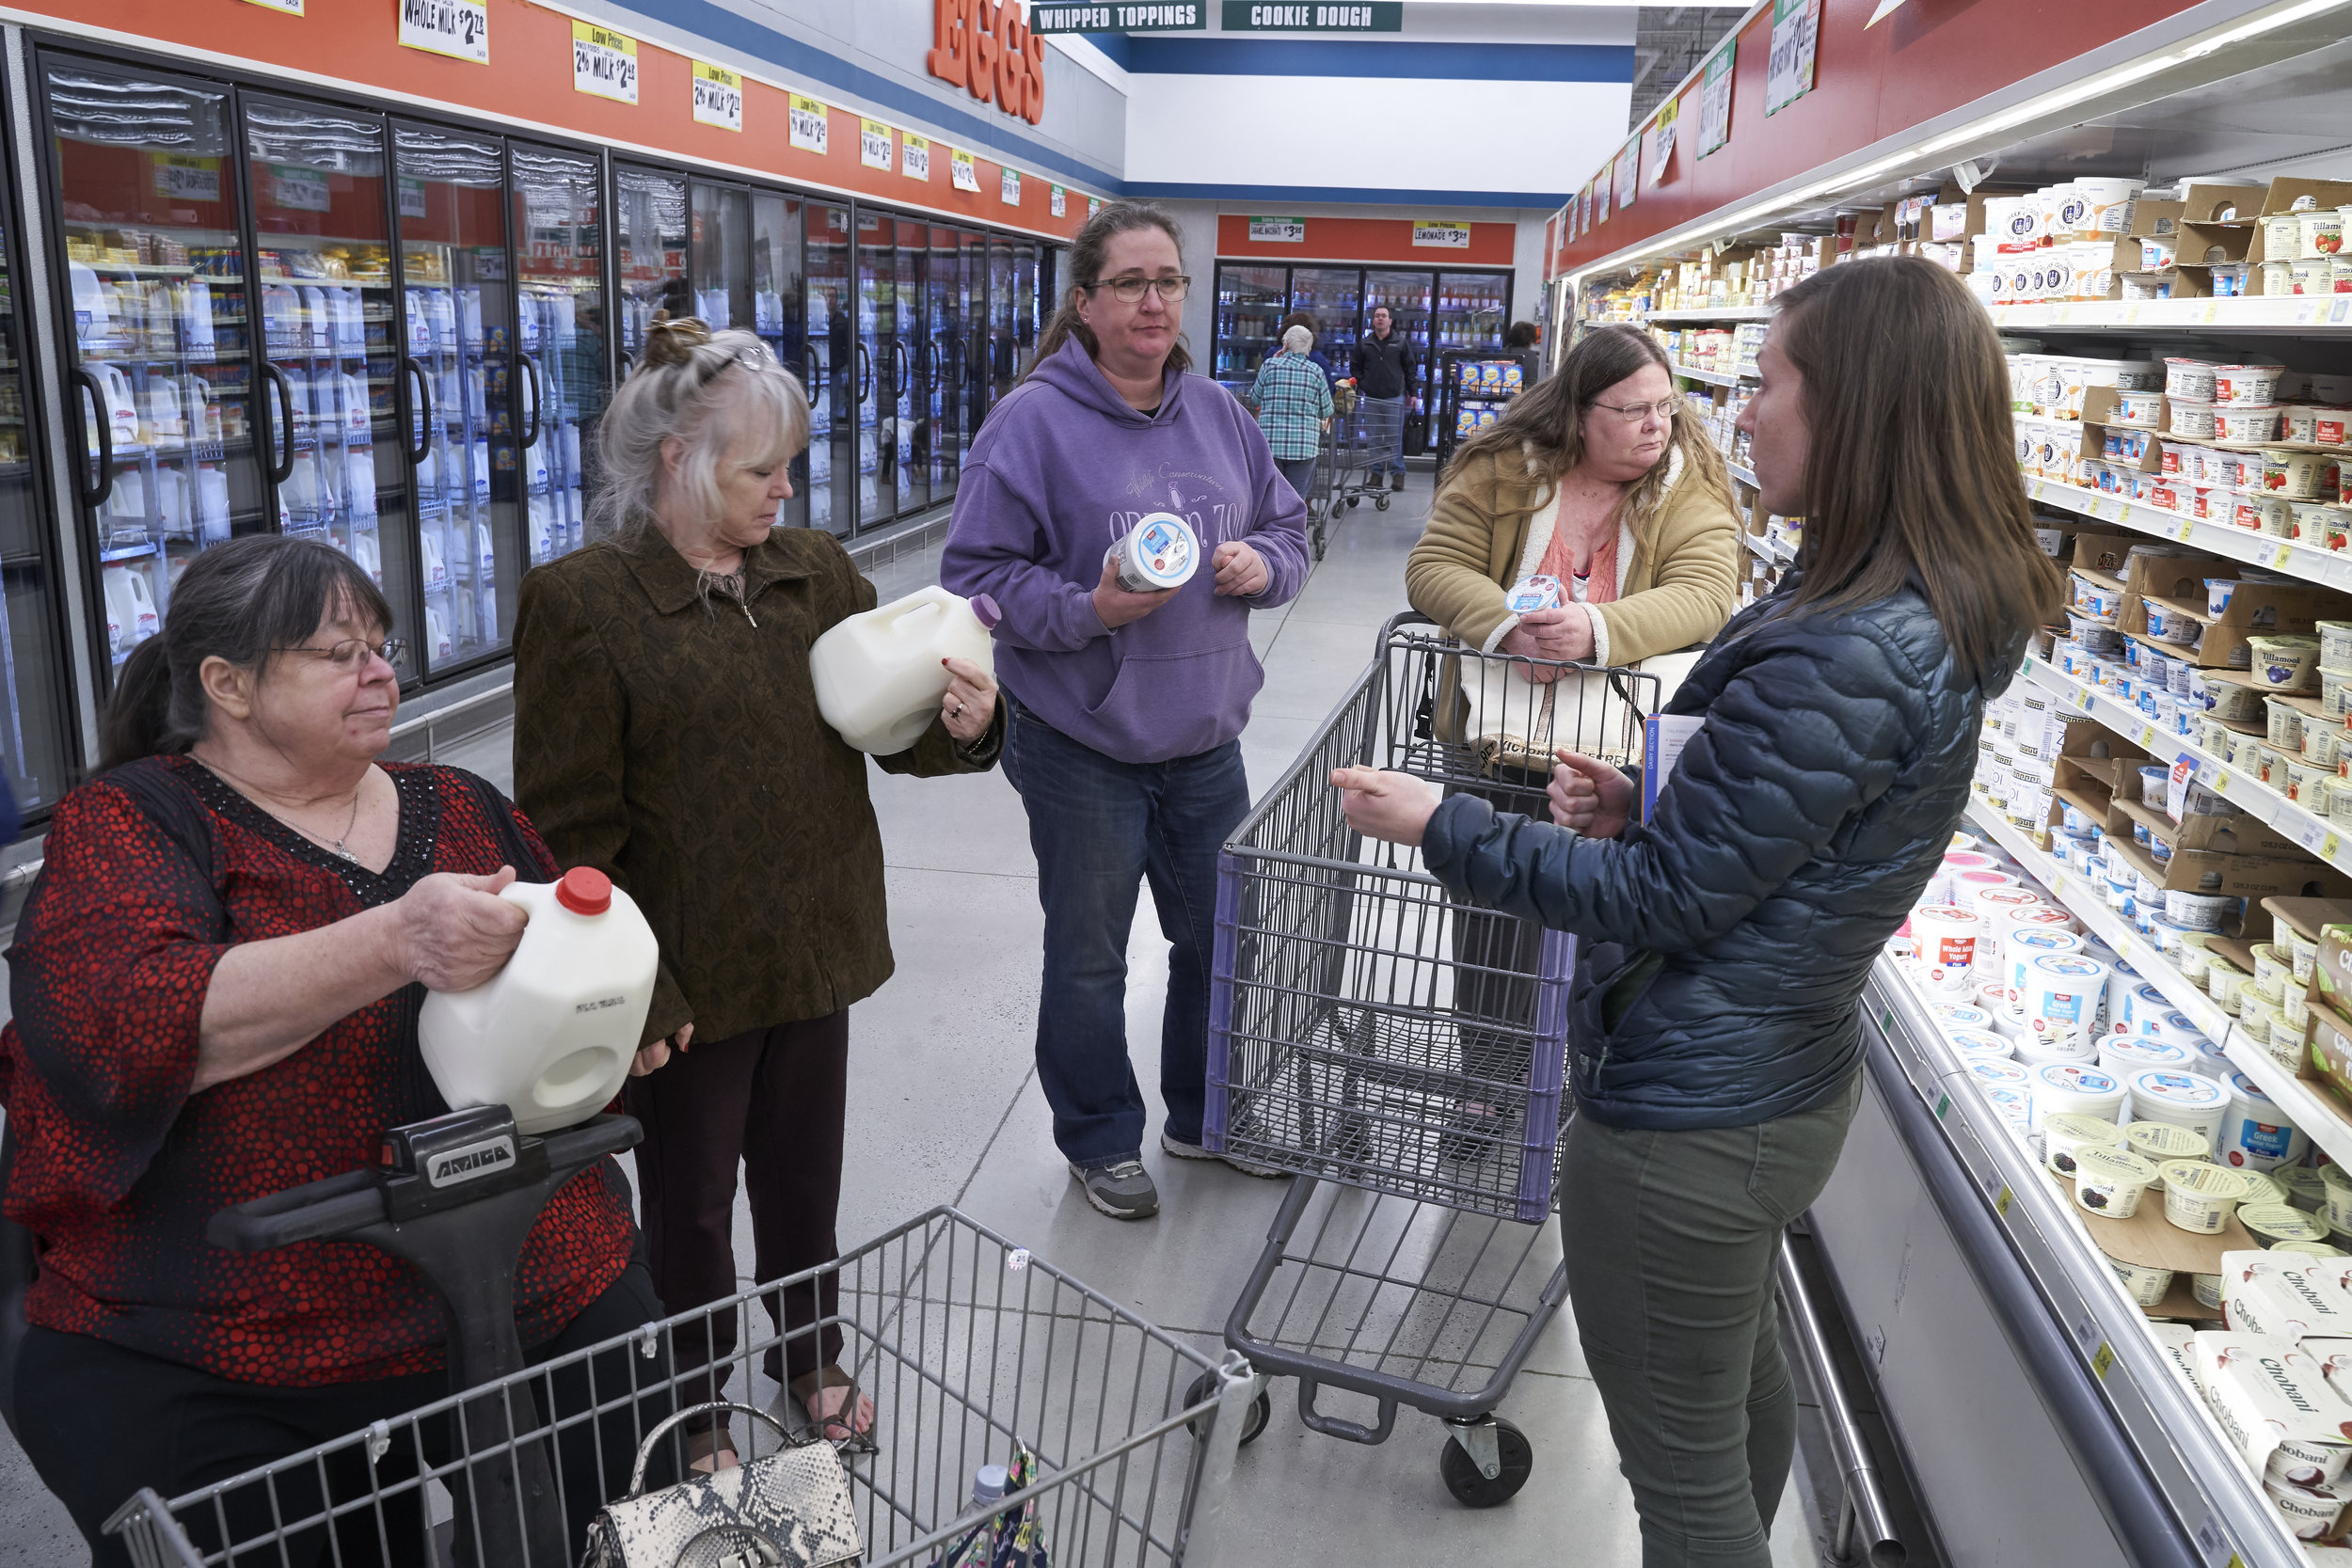 Clients are taught how to carefully examine and compare food labels and nutrition facts during the Cooking Matters Grocery Store Tour.